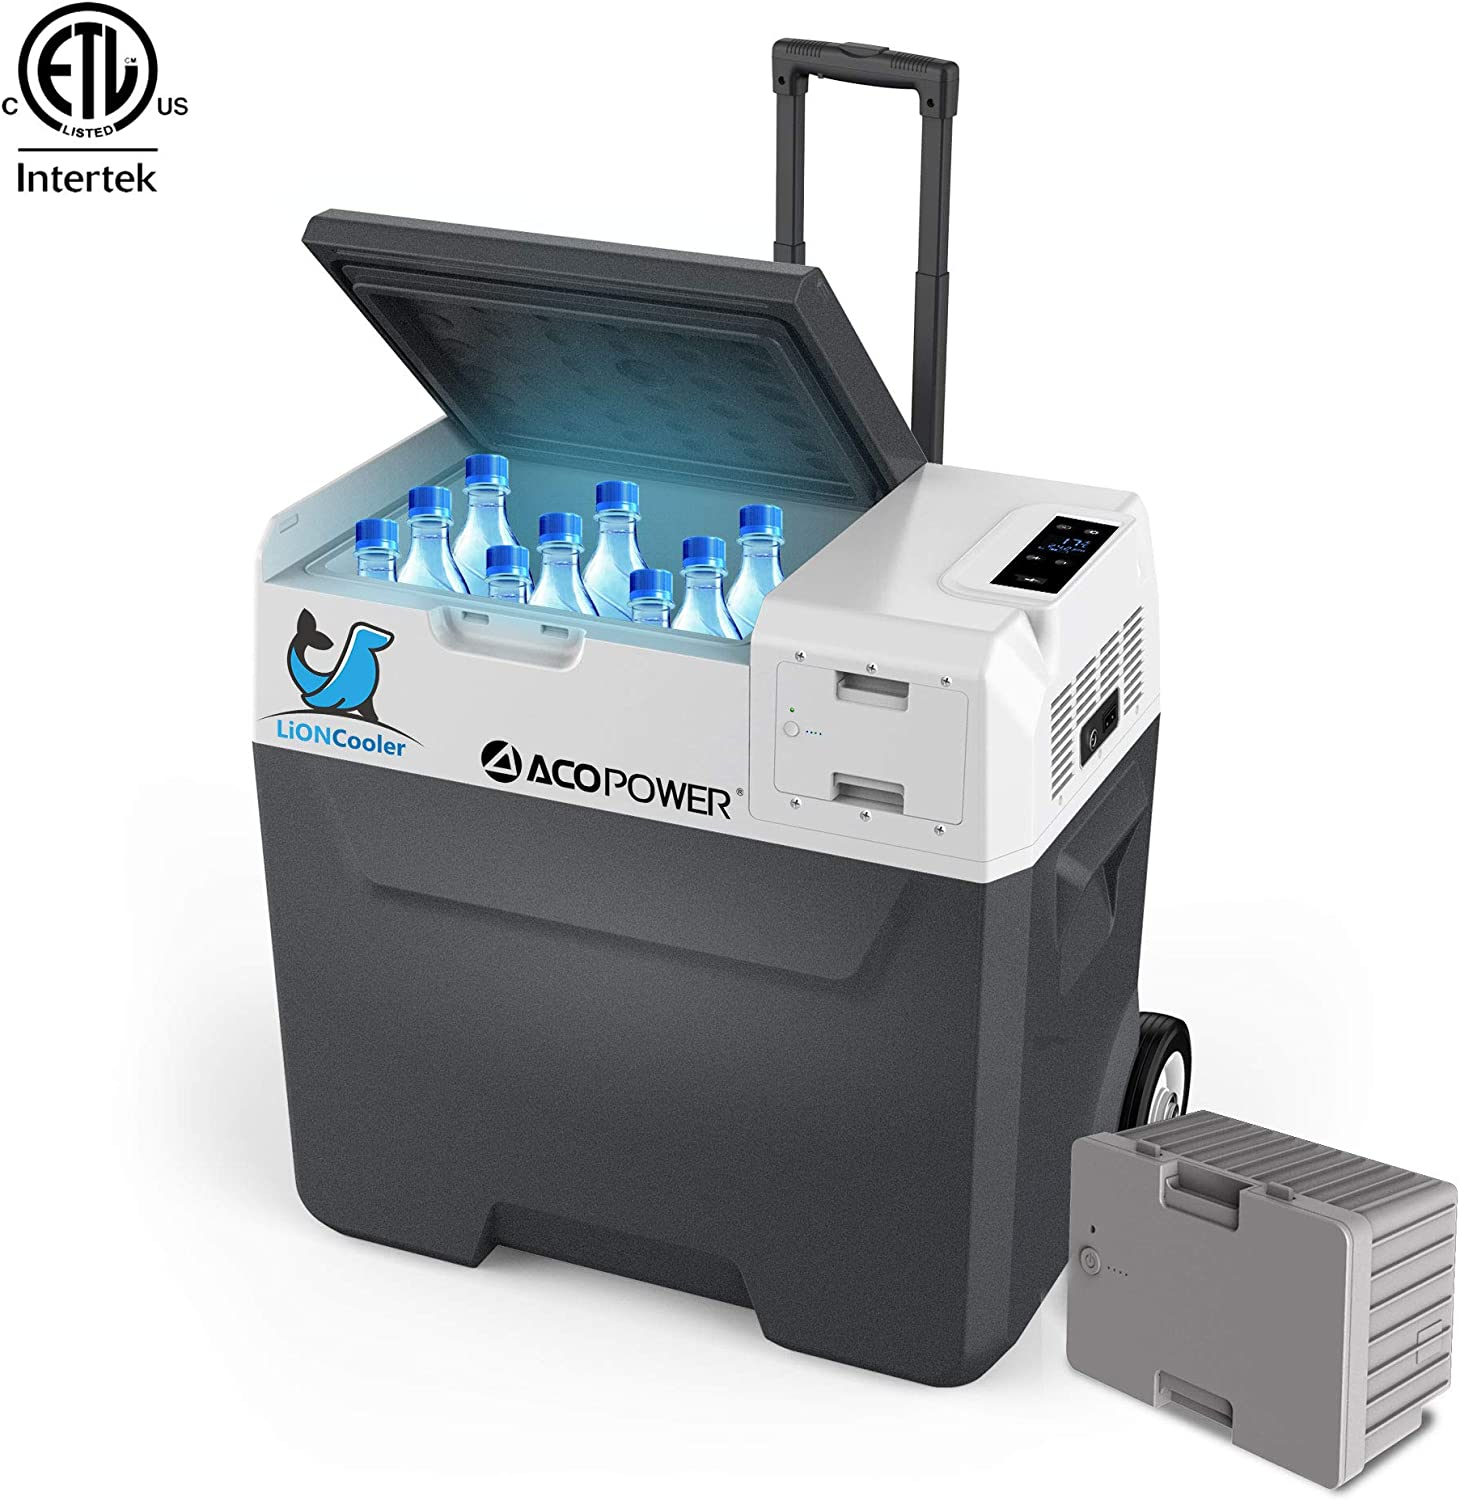 ACOPOWER LionCooler X50A Combo, 52 Quarts Solar Freezer & Extra173Wh Battery (2 Batteries Included)